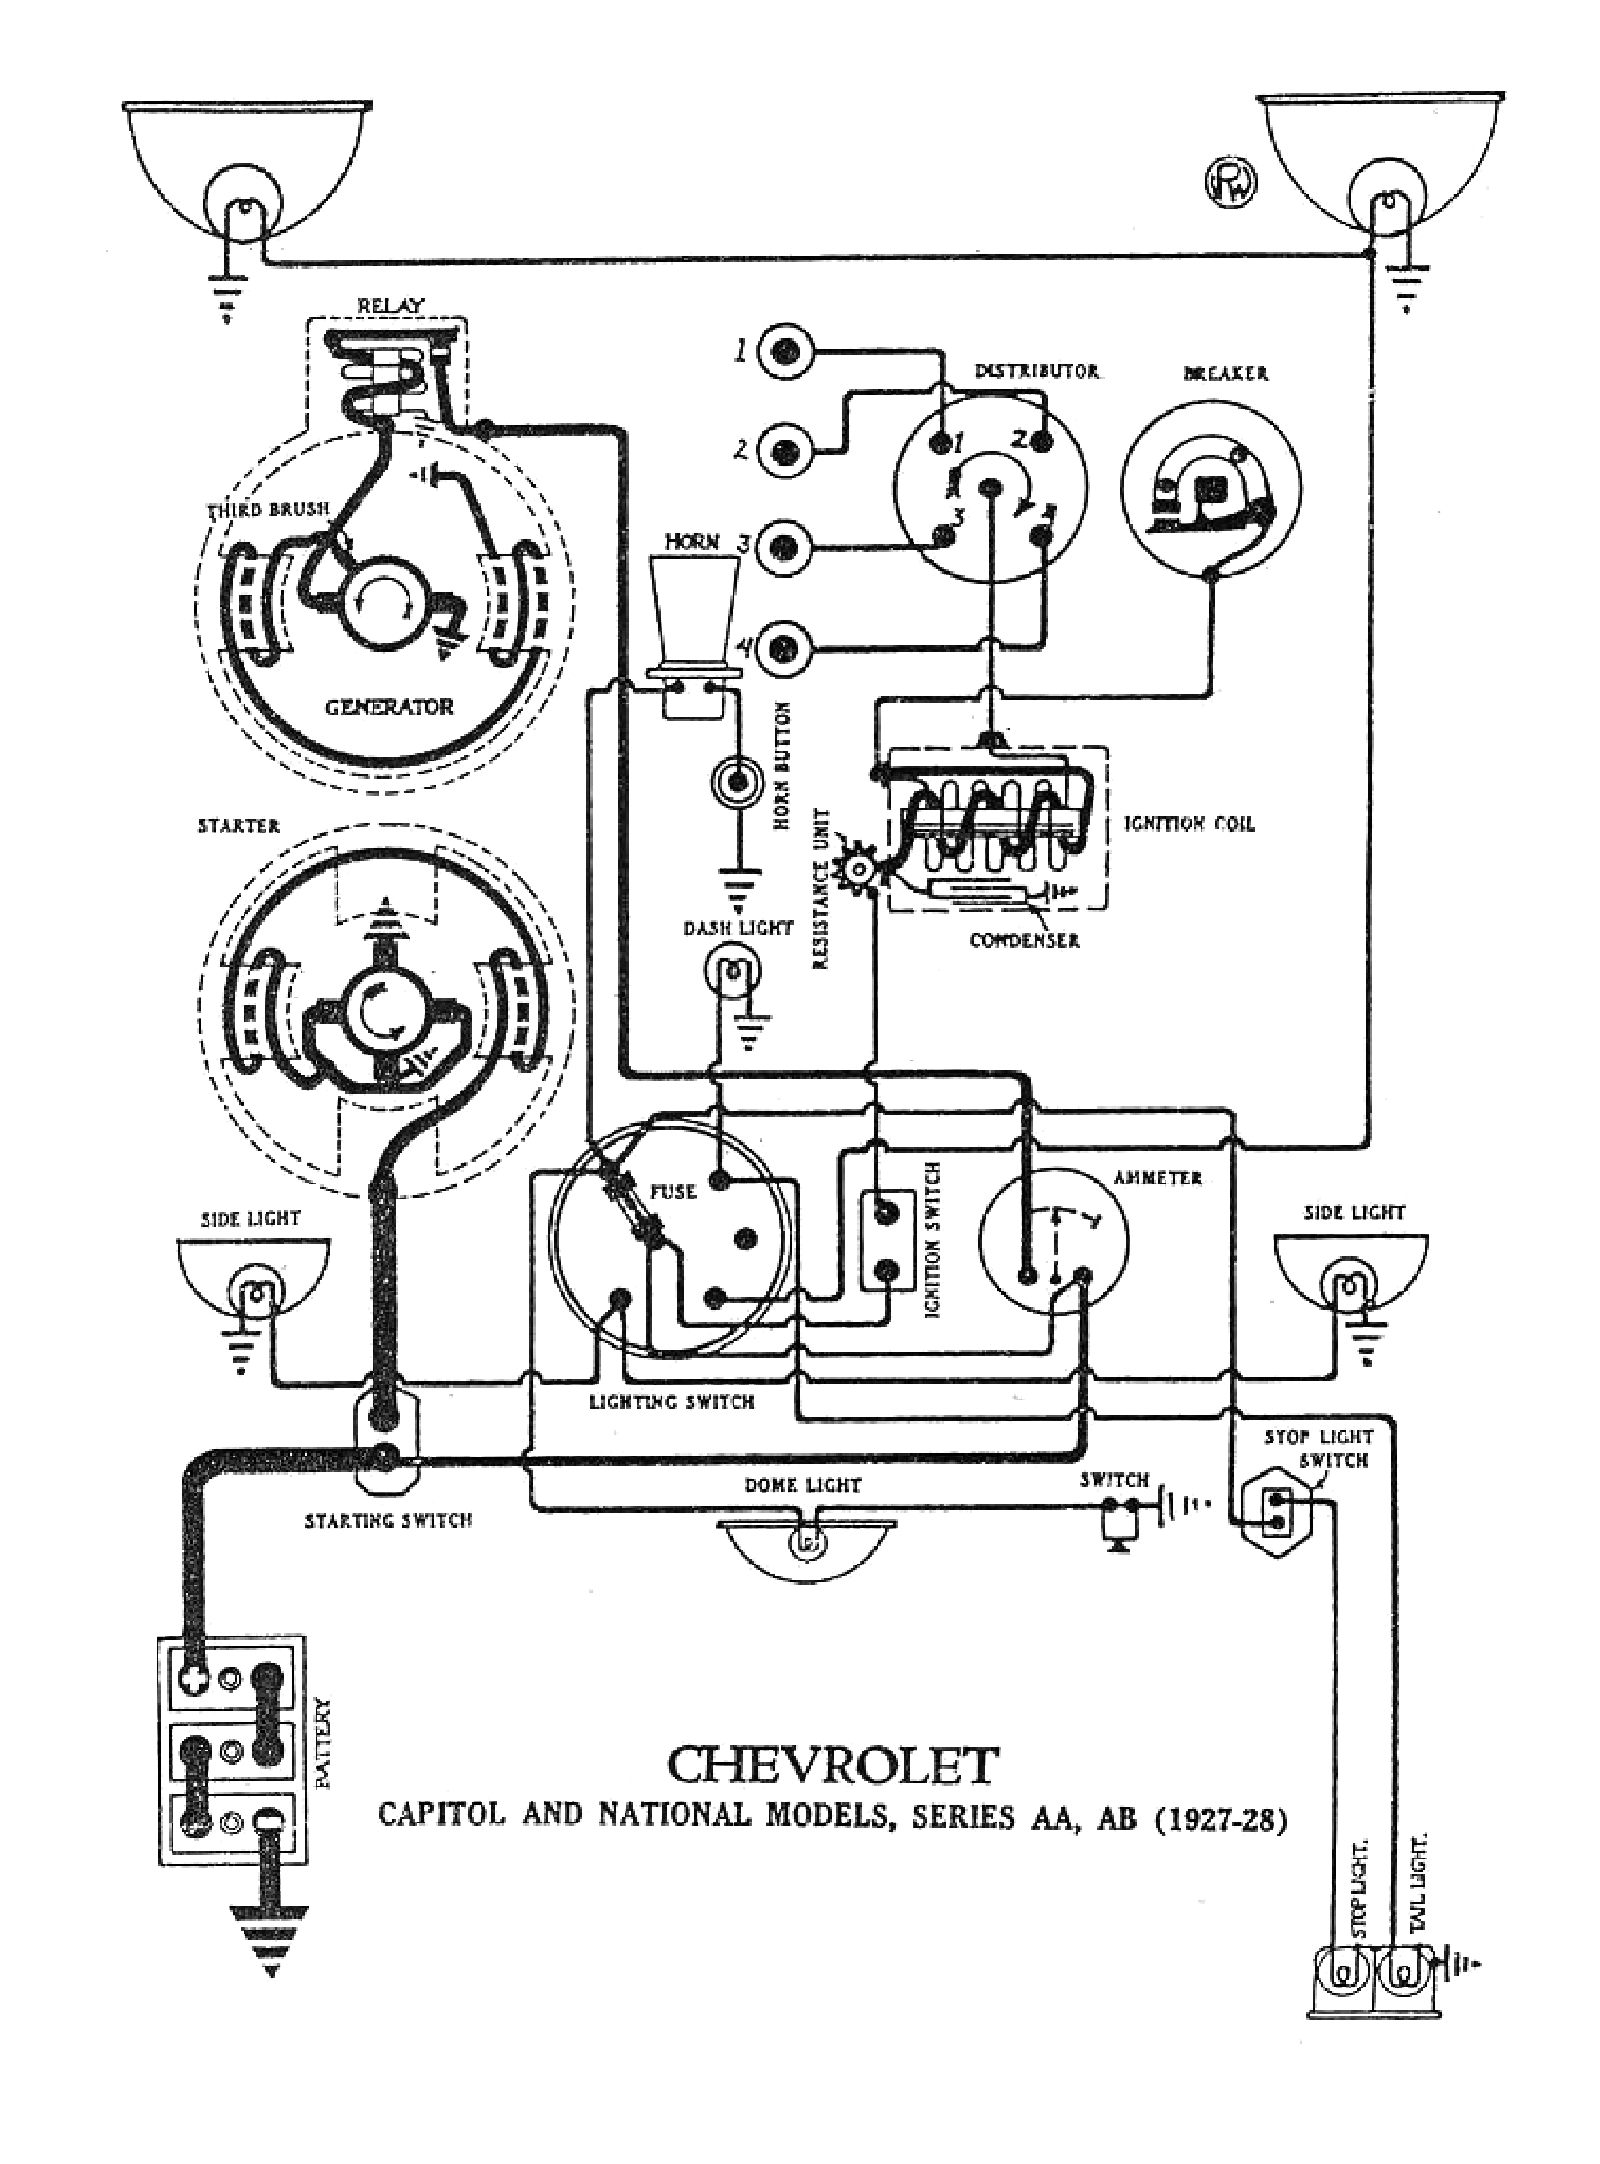 Chevy Wiring Diagrams 06 Silverado Radio Diagram Printable Schematic 1927 Capitol National Models 1928